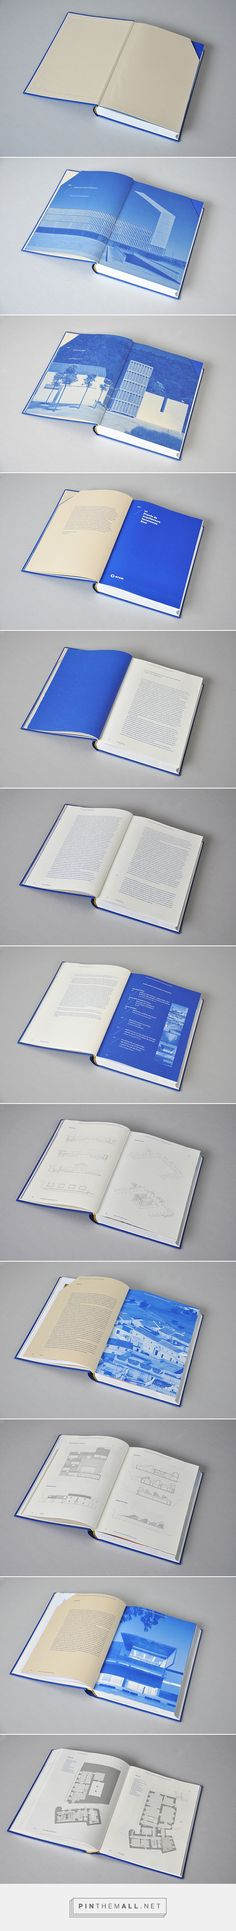 Enor Architecture Awards by desescribir Graphic Design Books, Graphic Design Print, Graphic Design Typography, Page Layout Design, Book Layout, Editorial Layout, Editorial Design, Publication Design, Print Layout